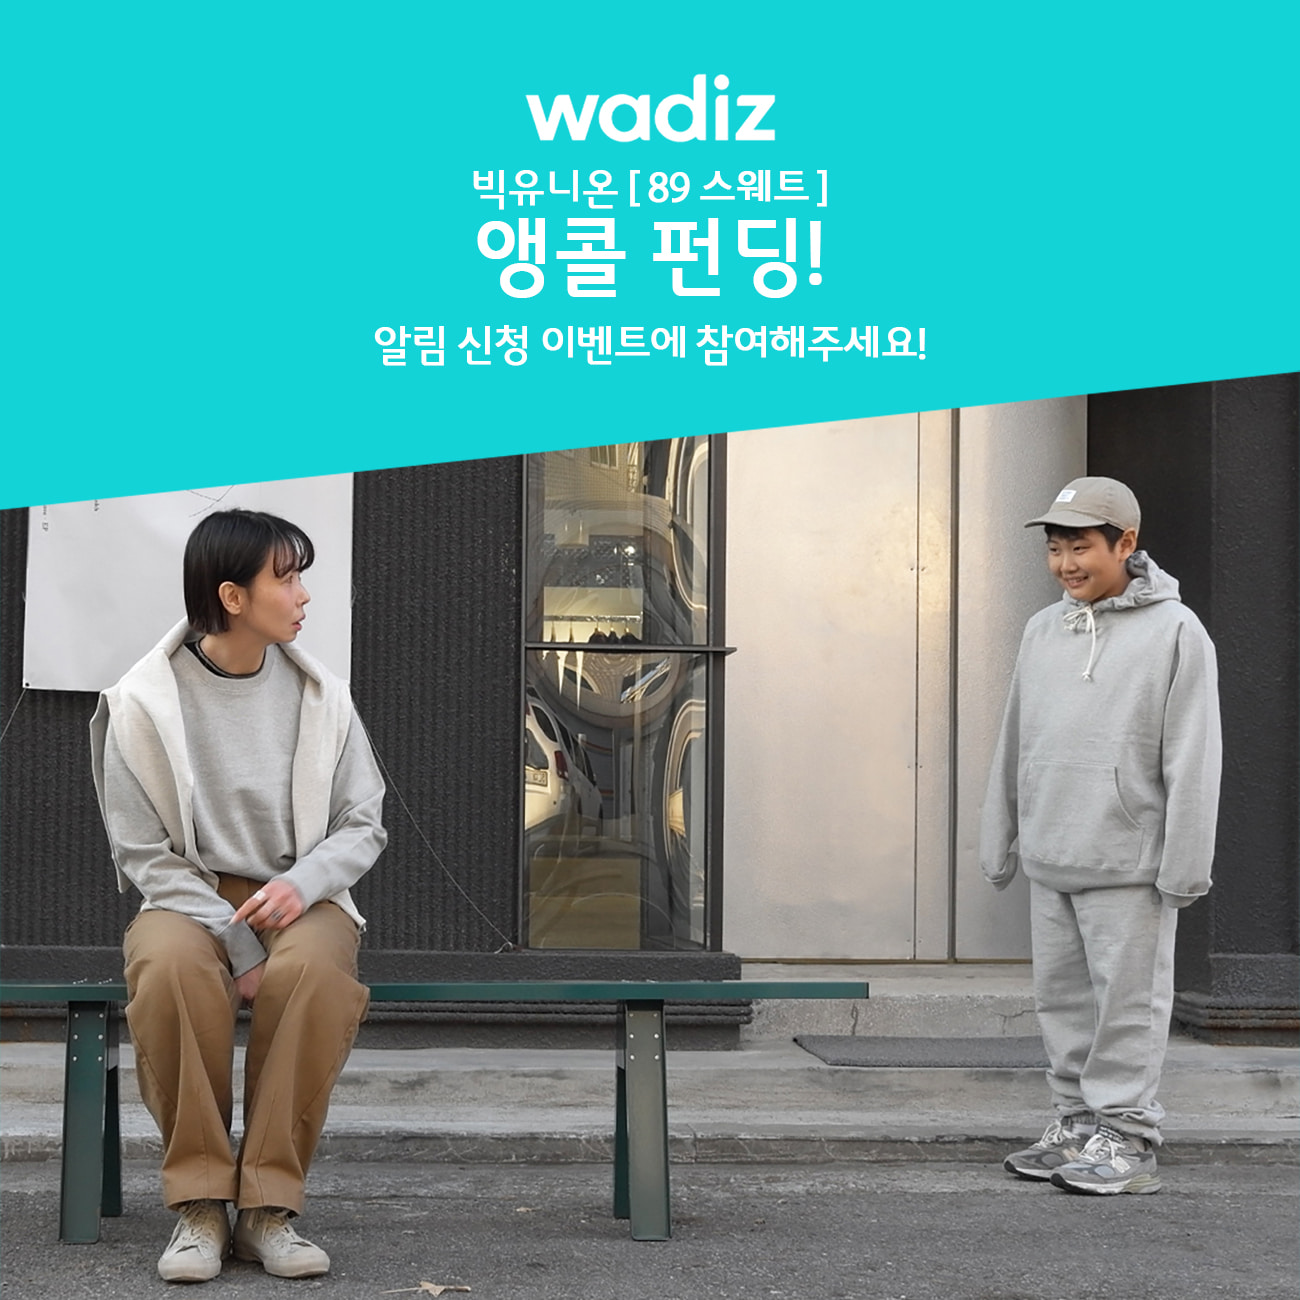 [ wadiz ] BIG UNION 89 Sweat